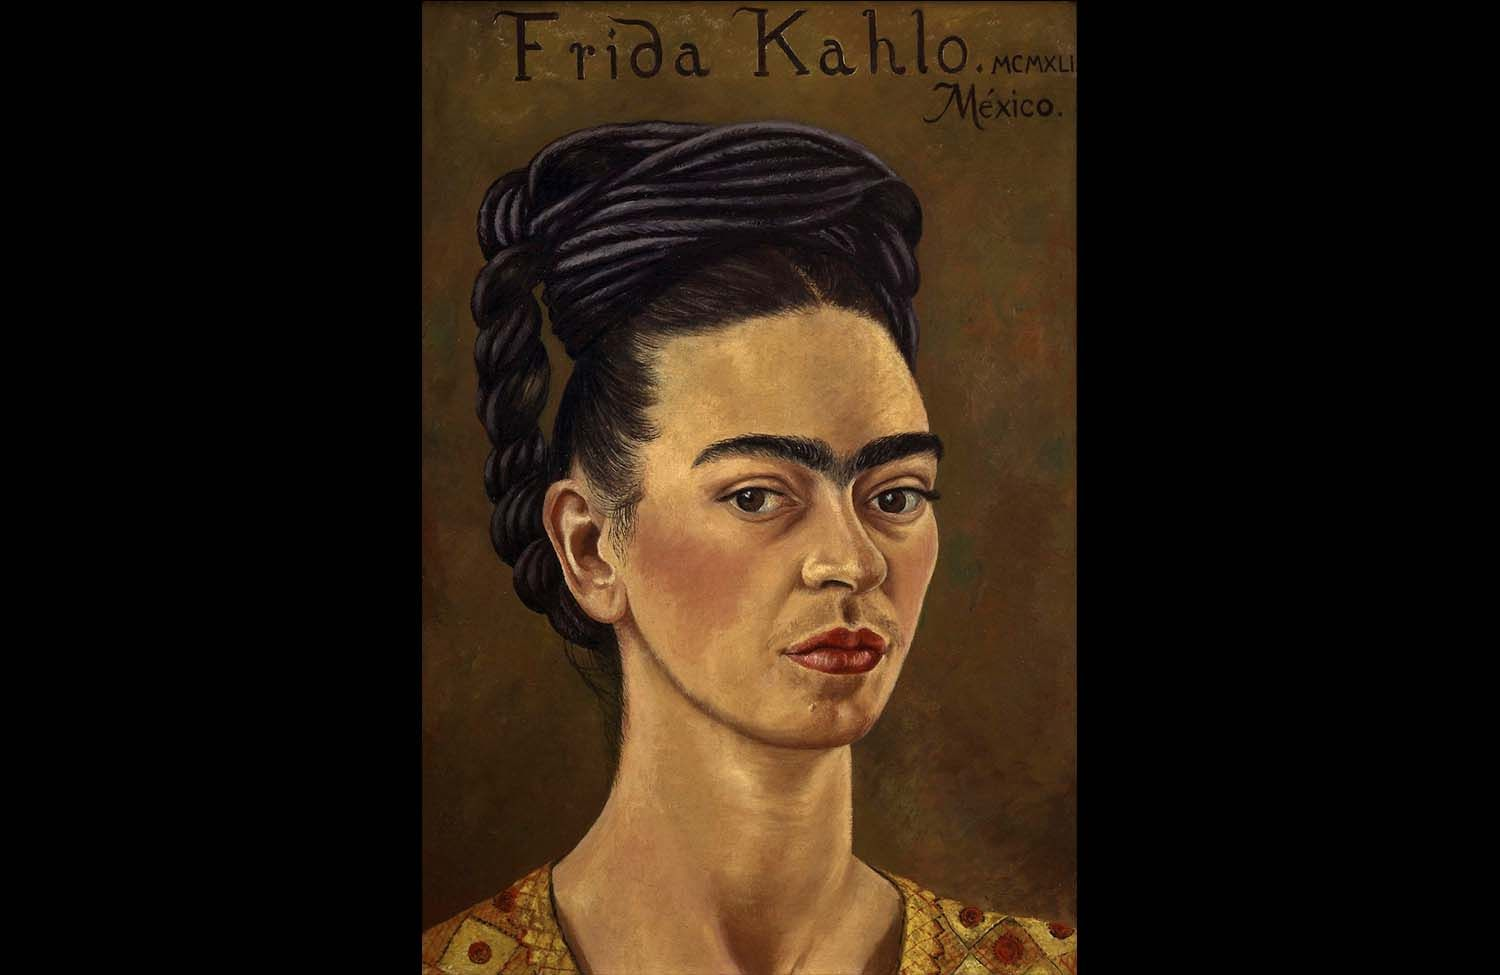 Frida Kahlo: Appearances Can Be Deceiving 3